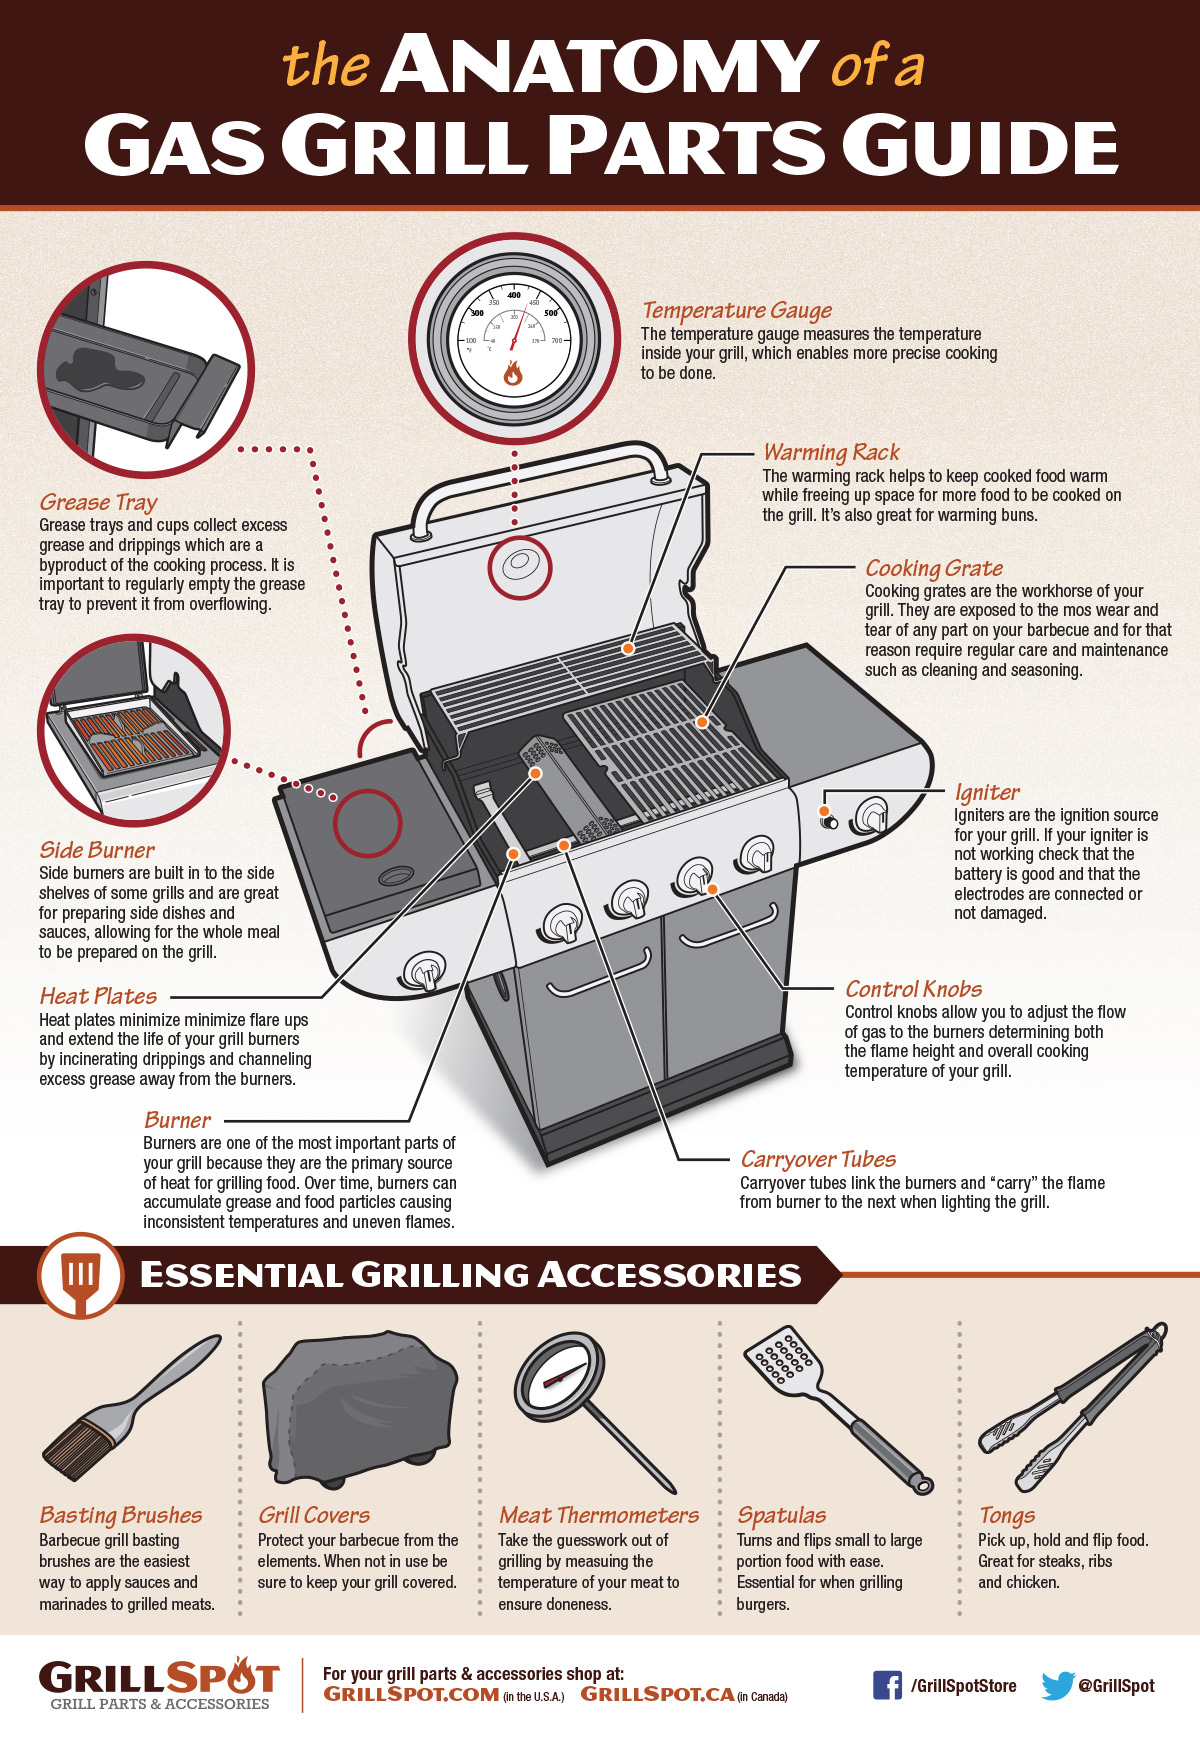 The Anatomy of a Gas Grill Parts Guide Infographic